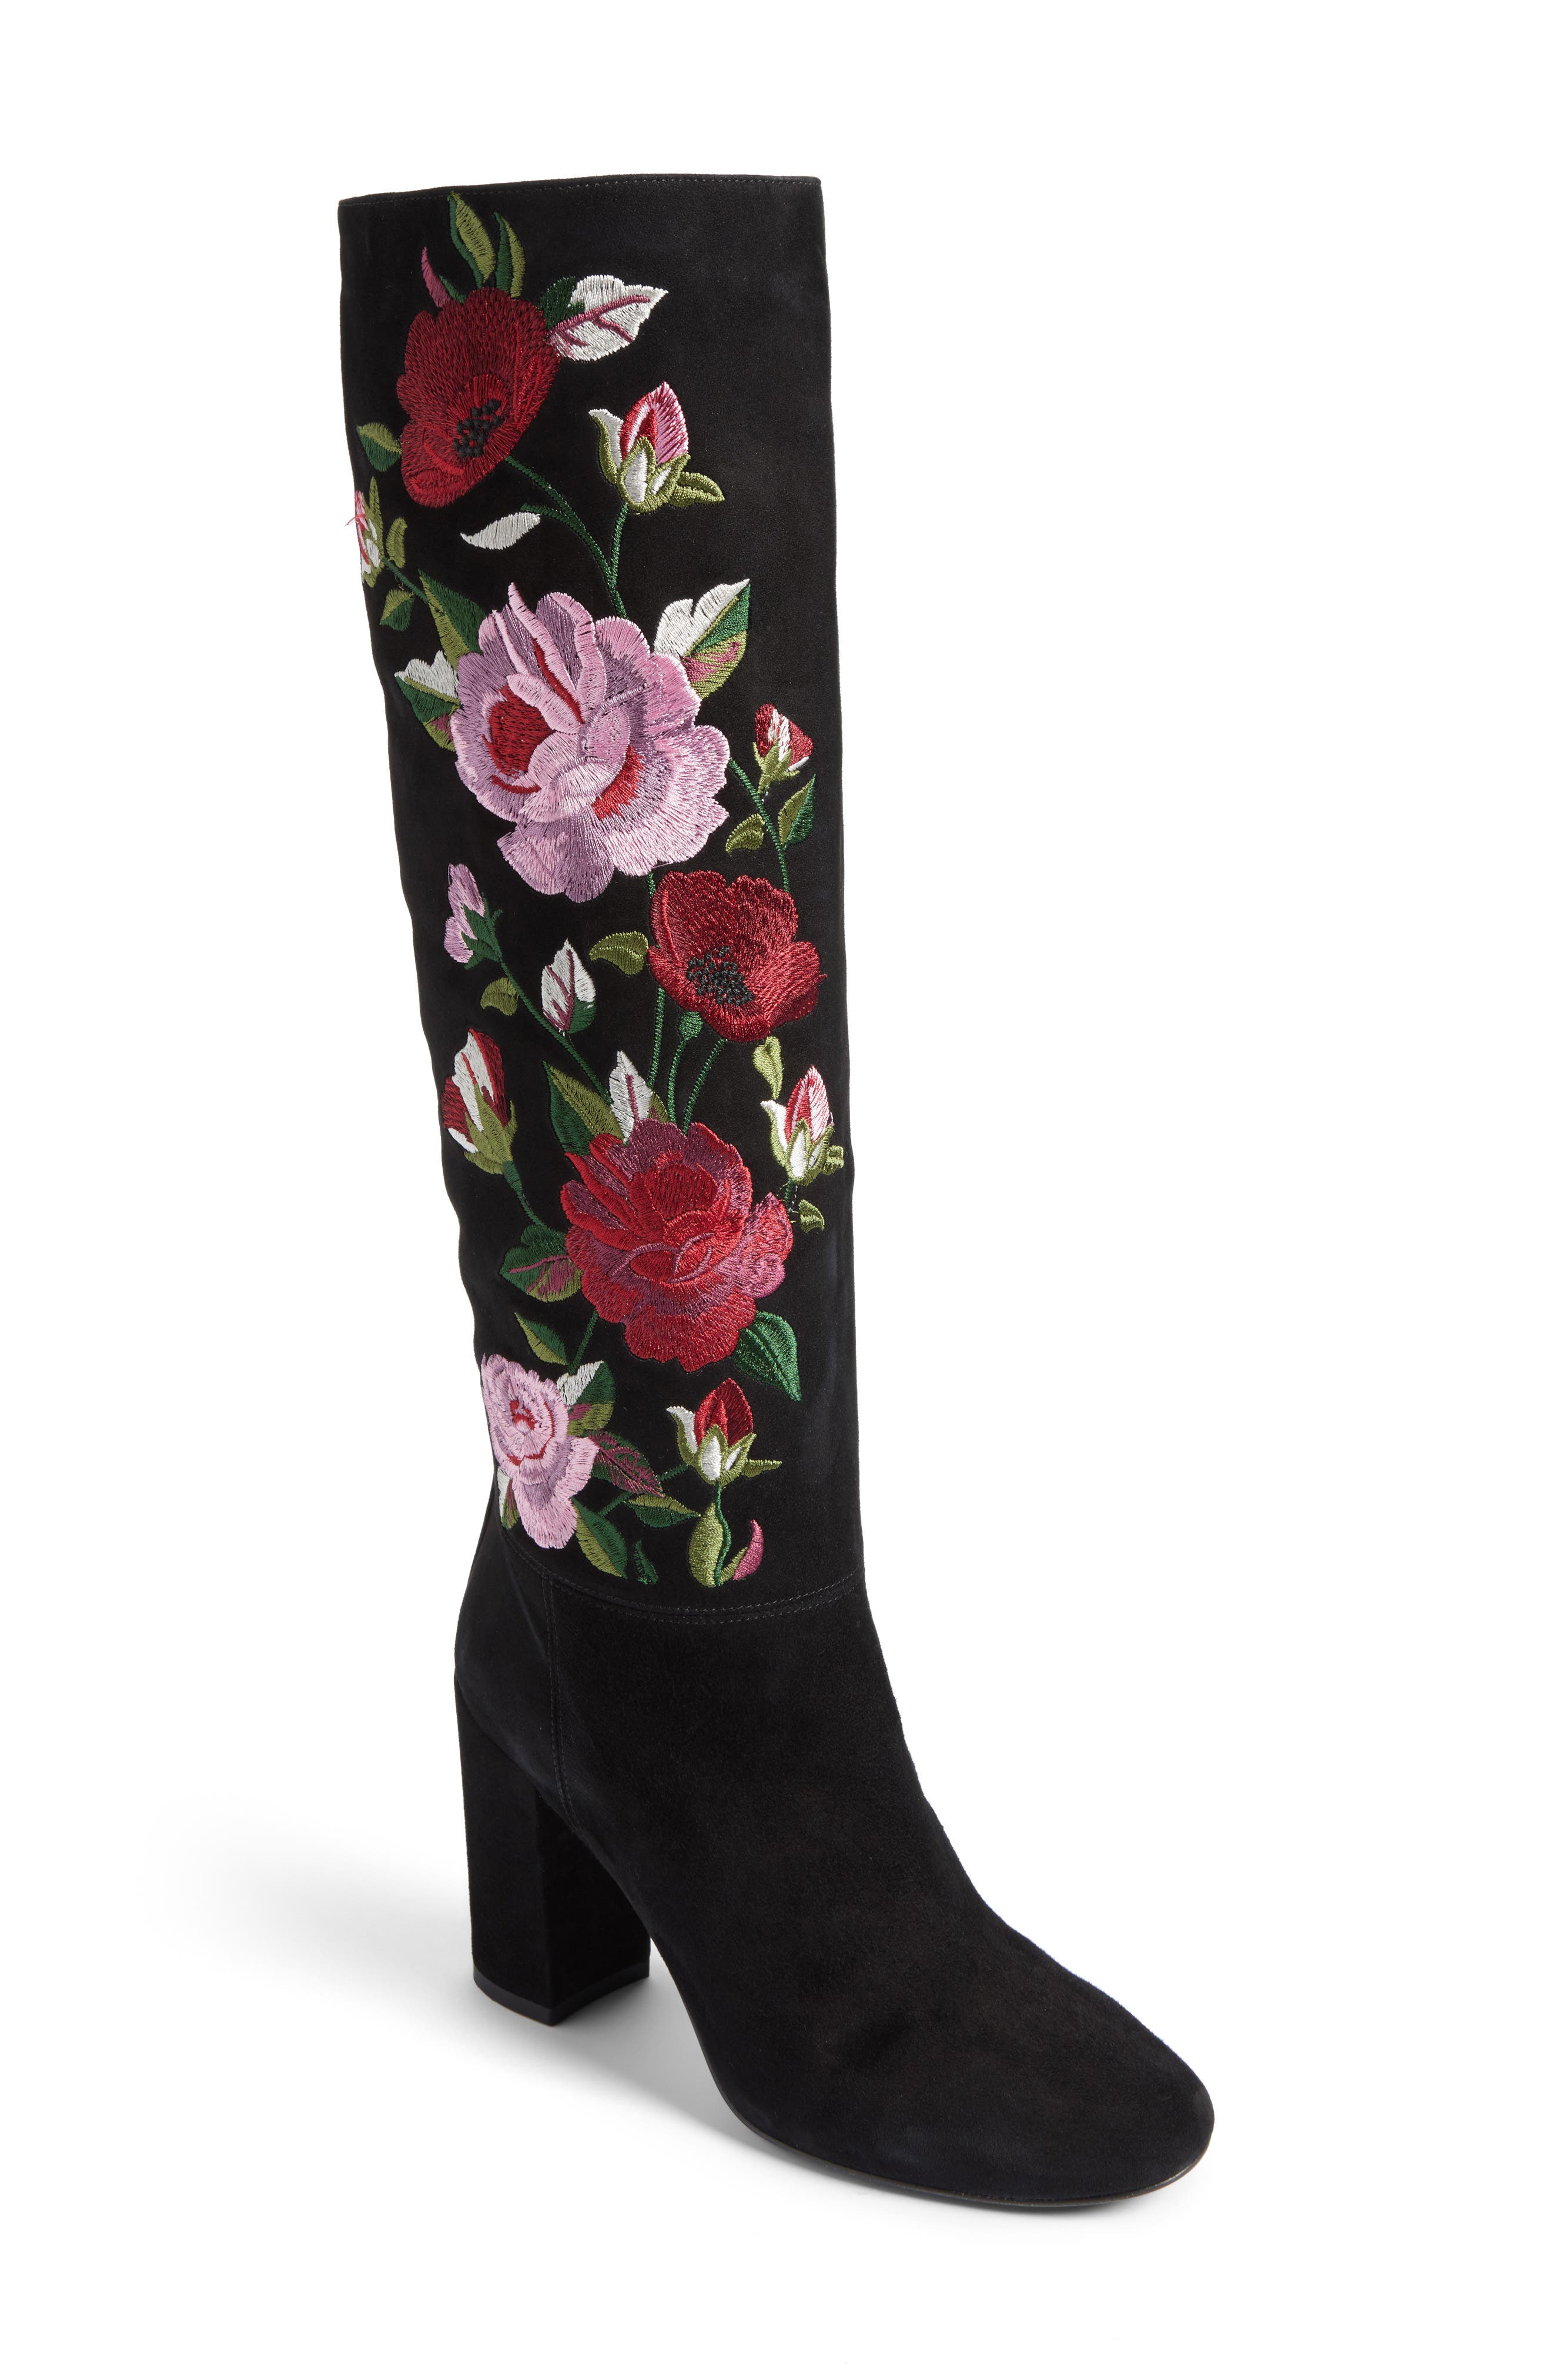 Main Image - kate spade new york greenfield flower embroidered boot (Women)